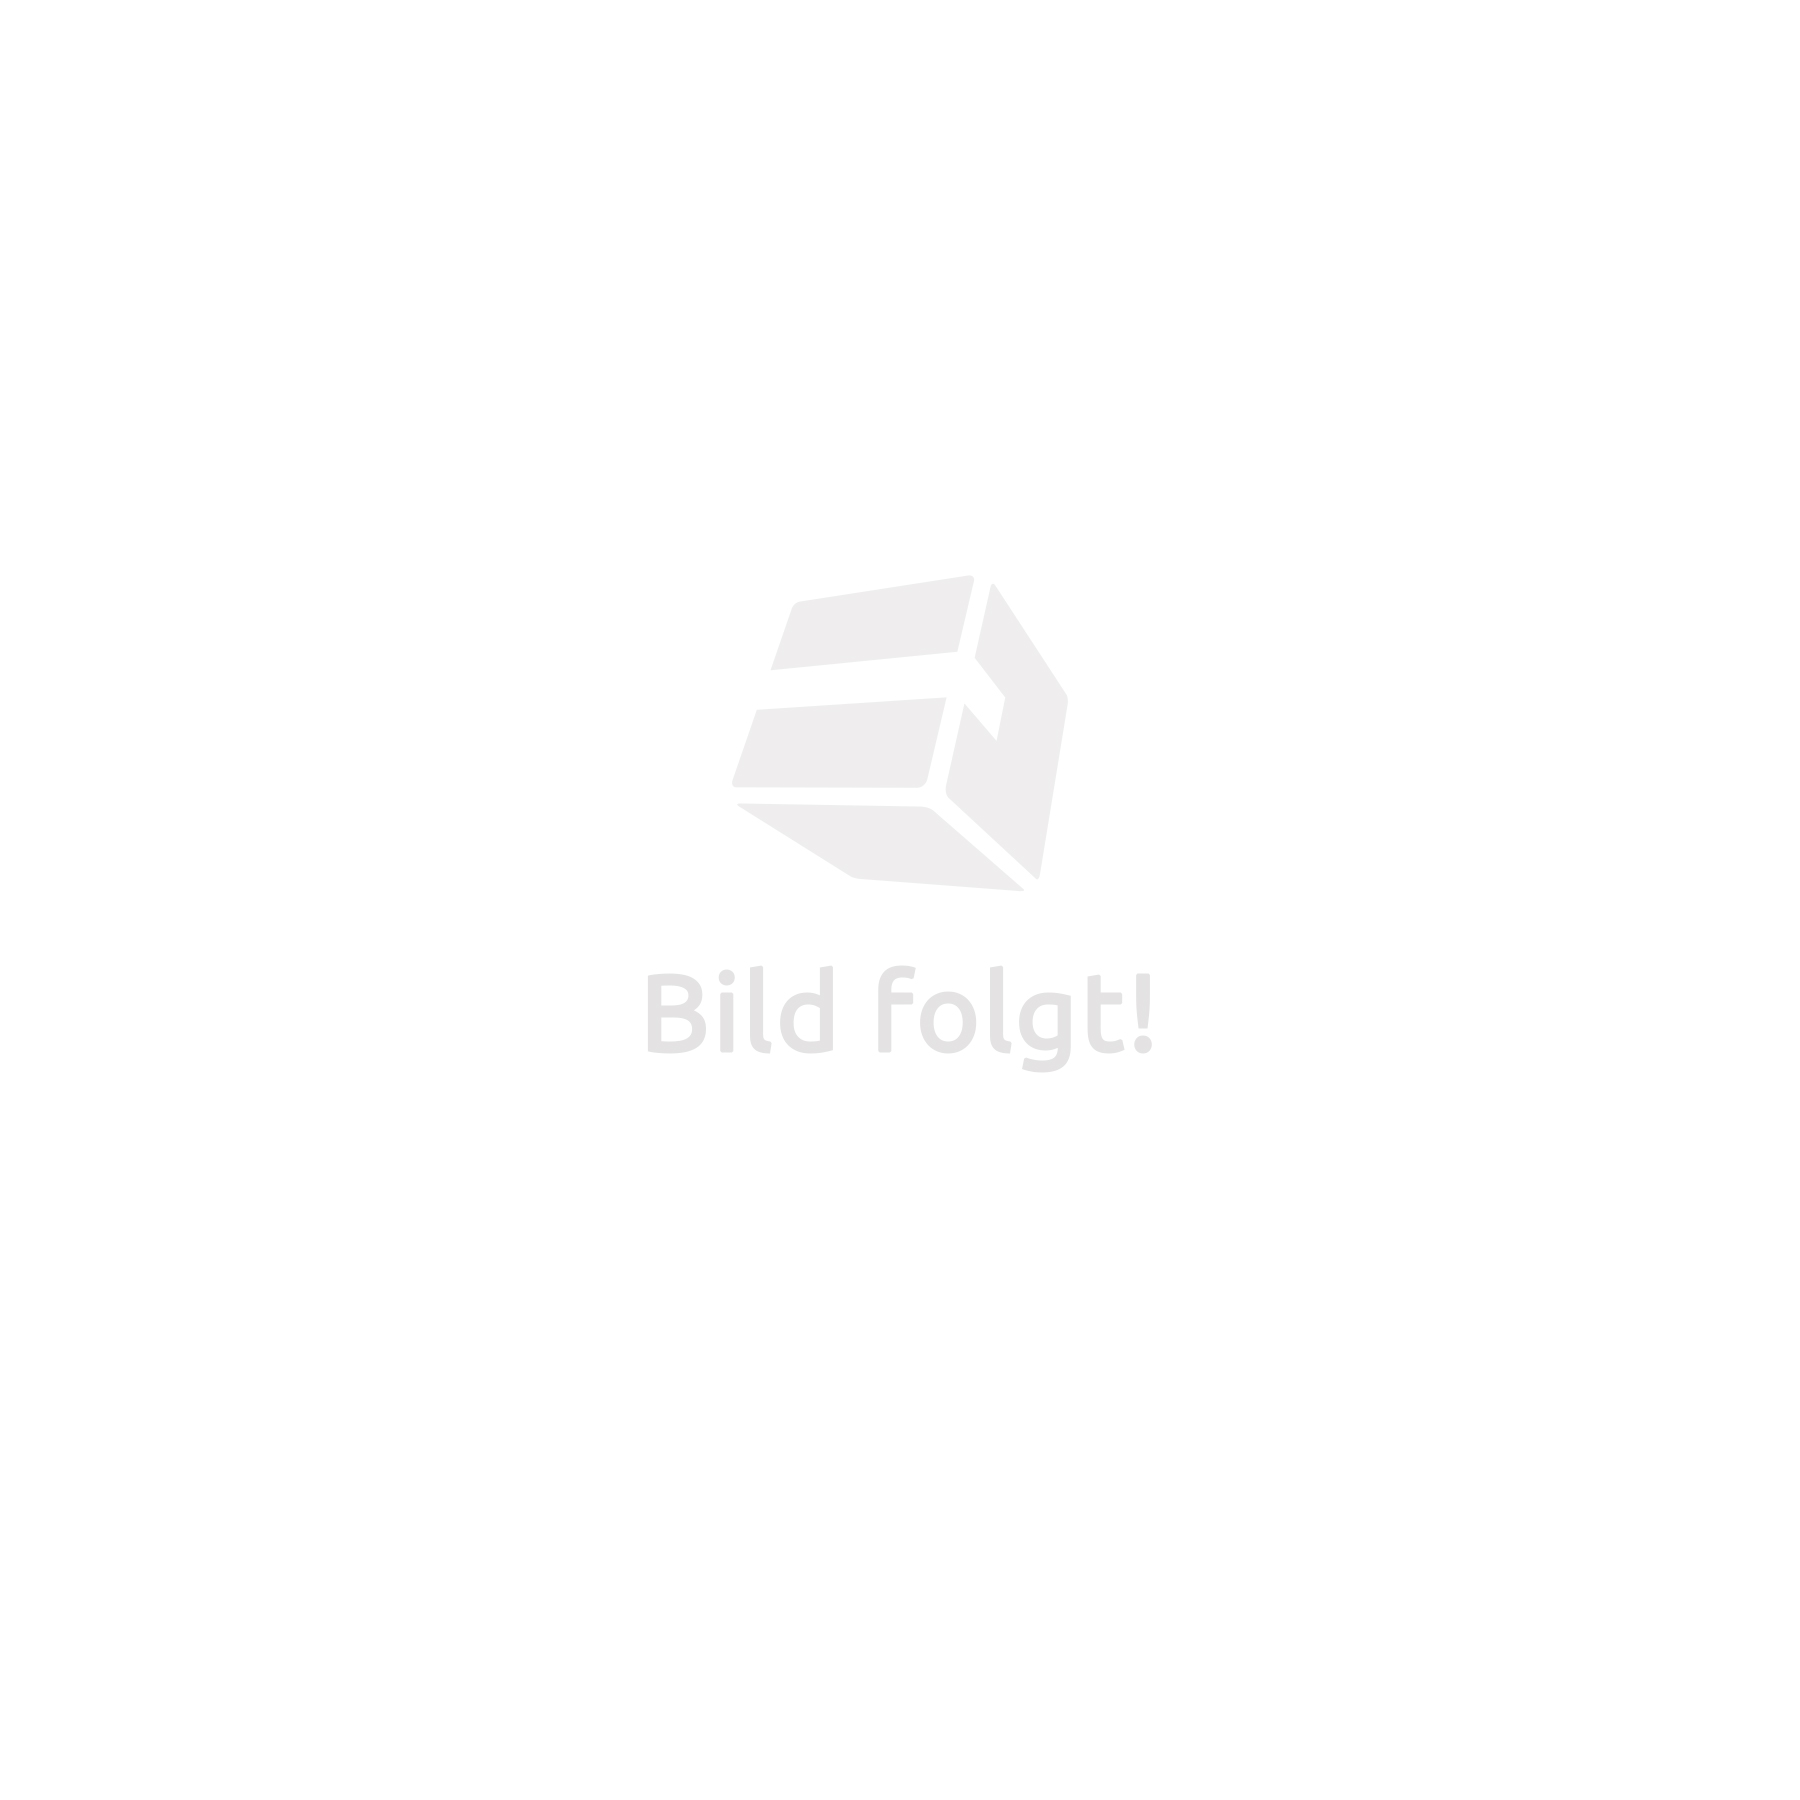 Wasserhahn mit LED-Beleuchtung & abnehmbarer Brause Modell 1